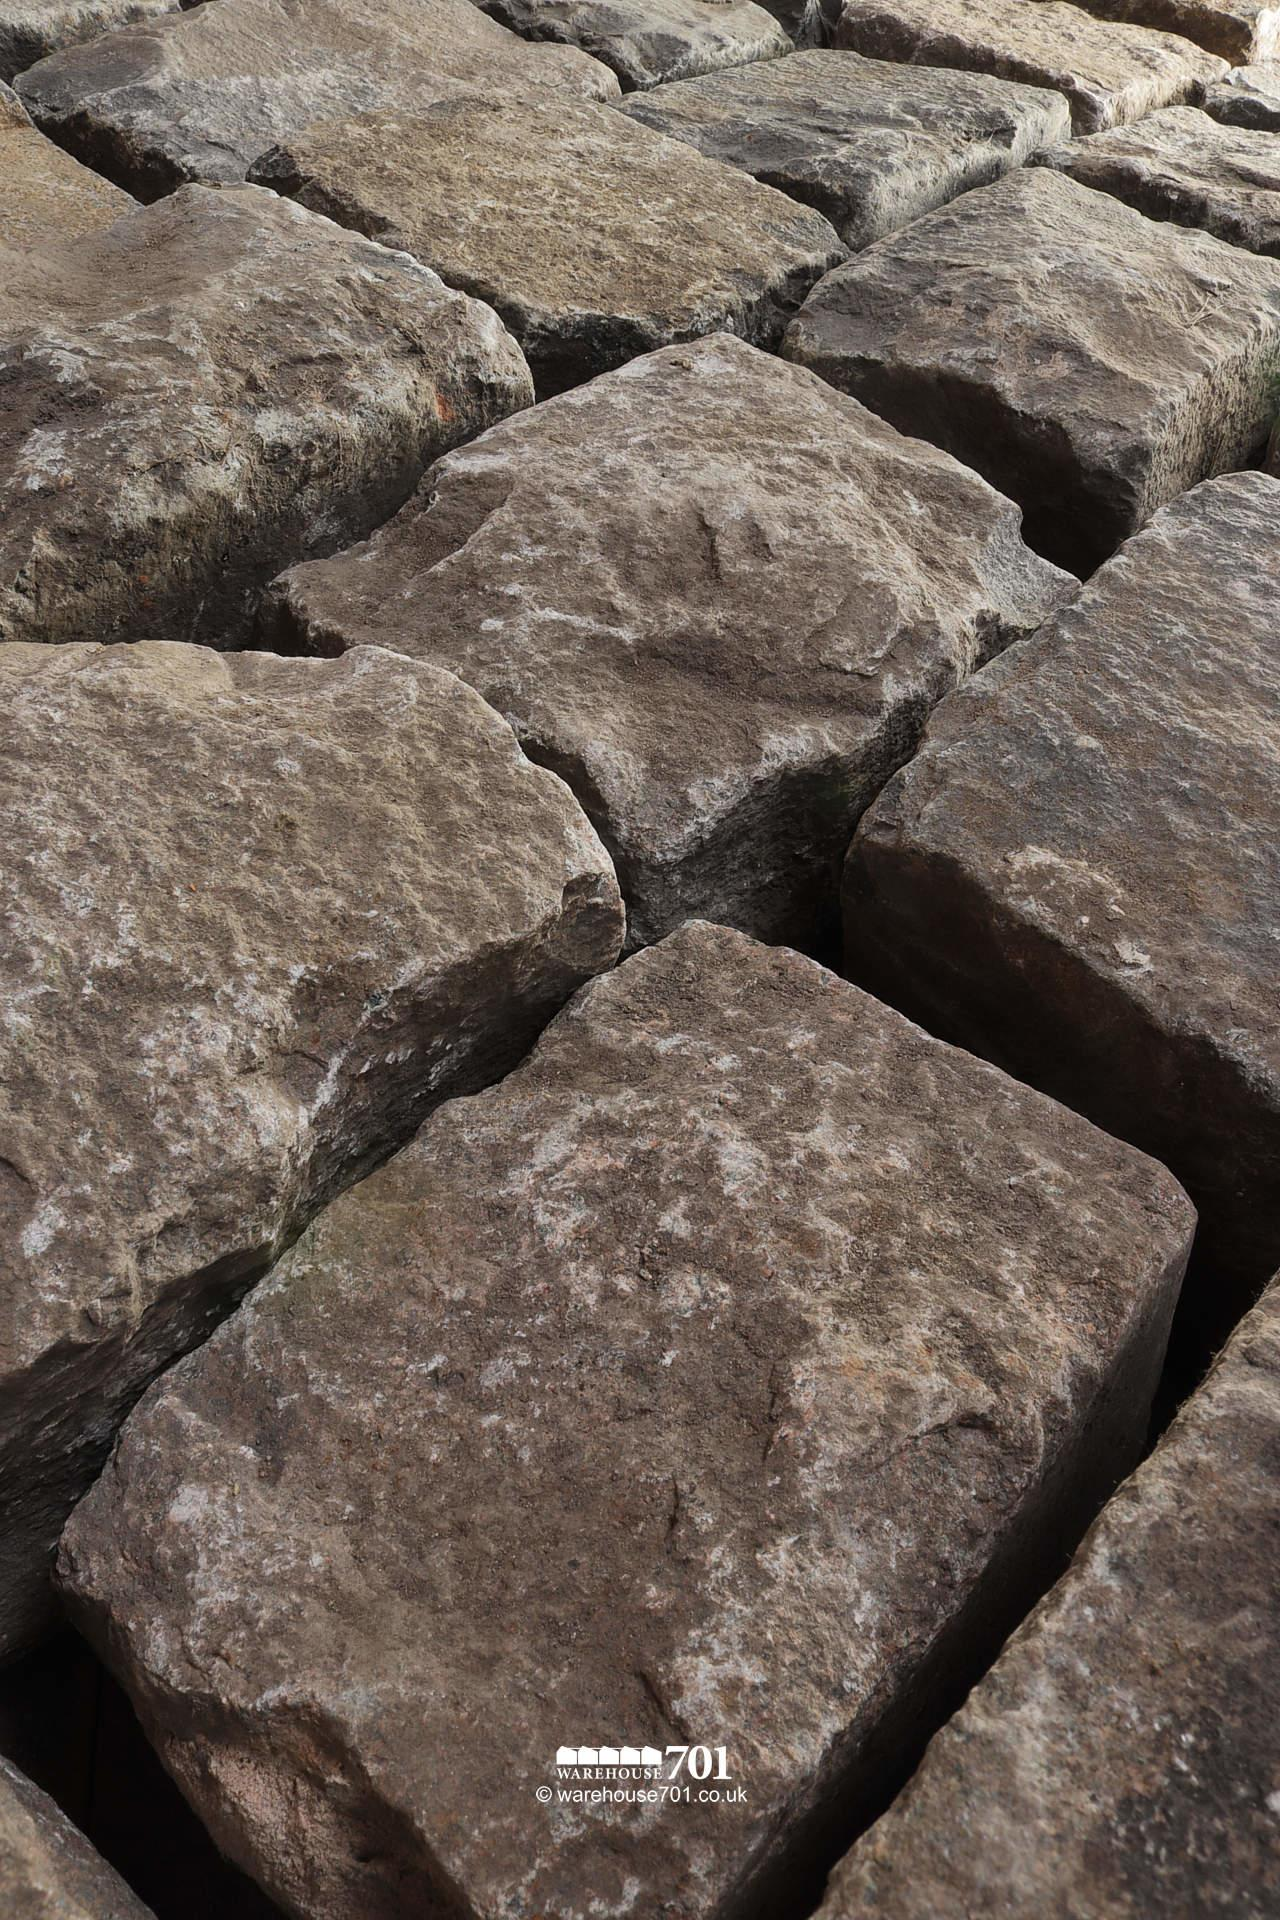 Salvaged Full Size Granite Squared Cobbles or Setts #3